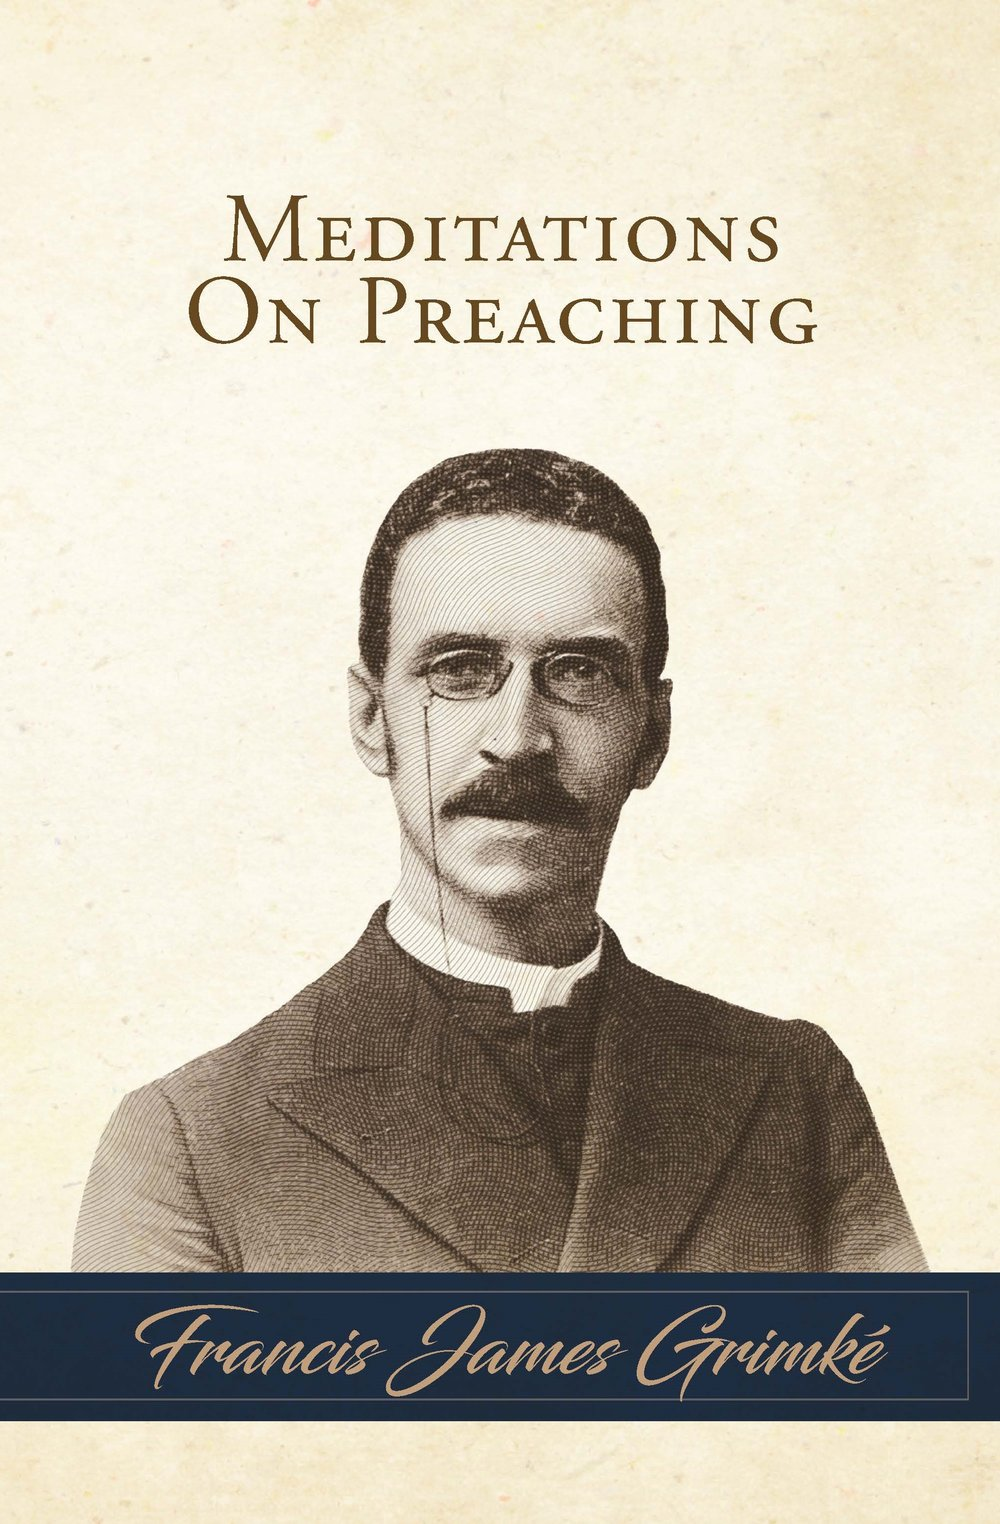 Grimke, Francis - Meditations on Preaching - Front Cover.jpg